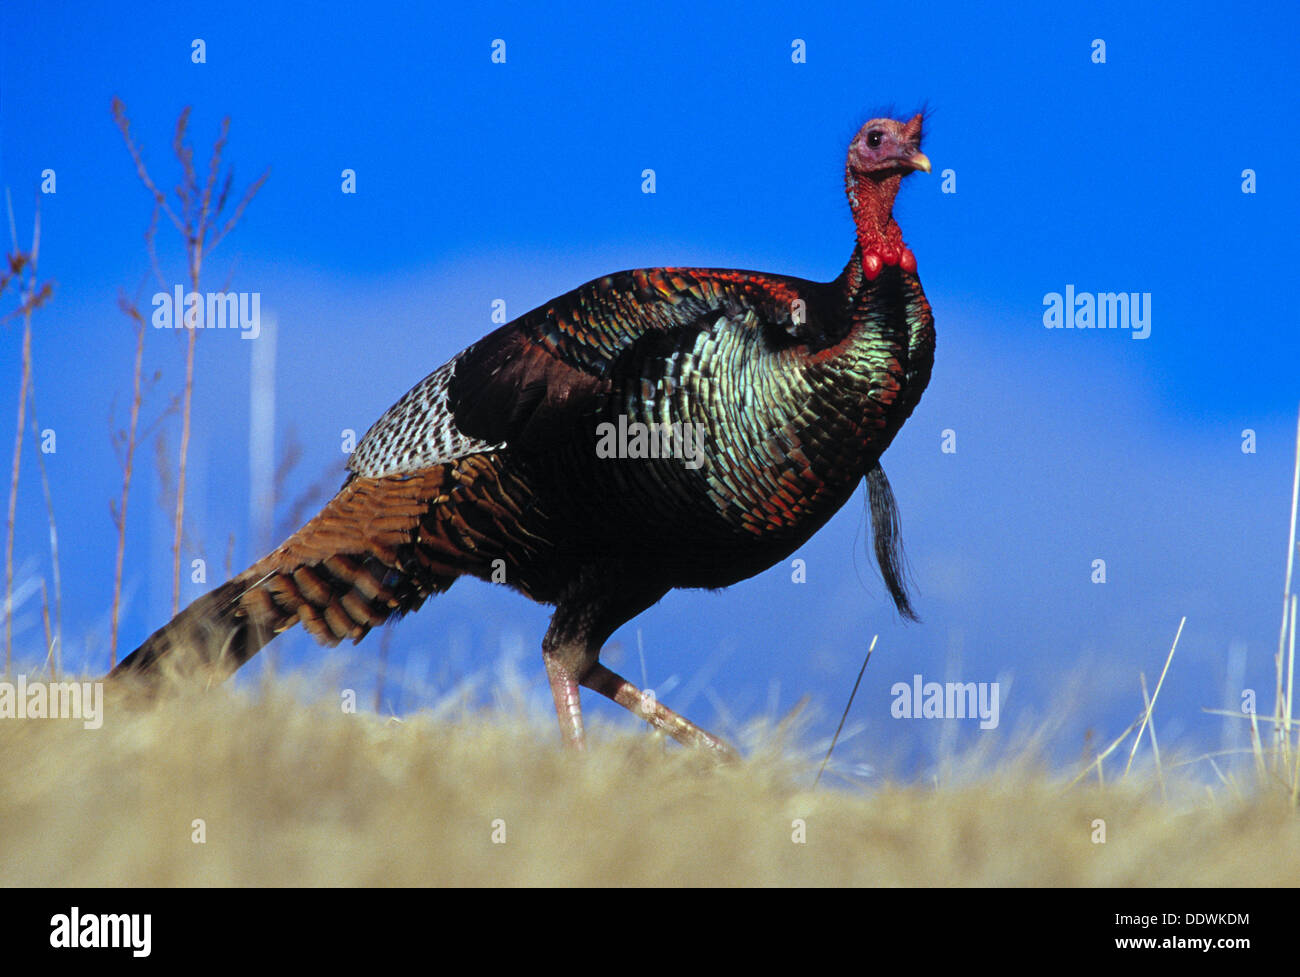 Male (Tom) turkey in the Cecil D. Andrus Wildlife Management Area Idaho USA - Stock Image